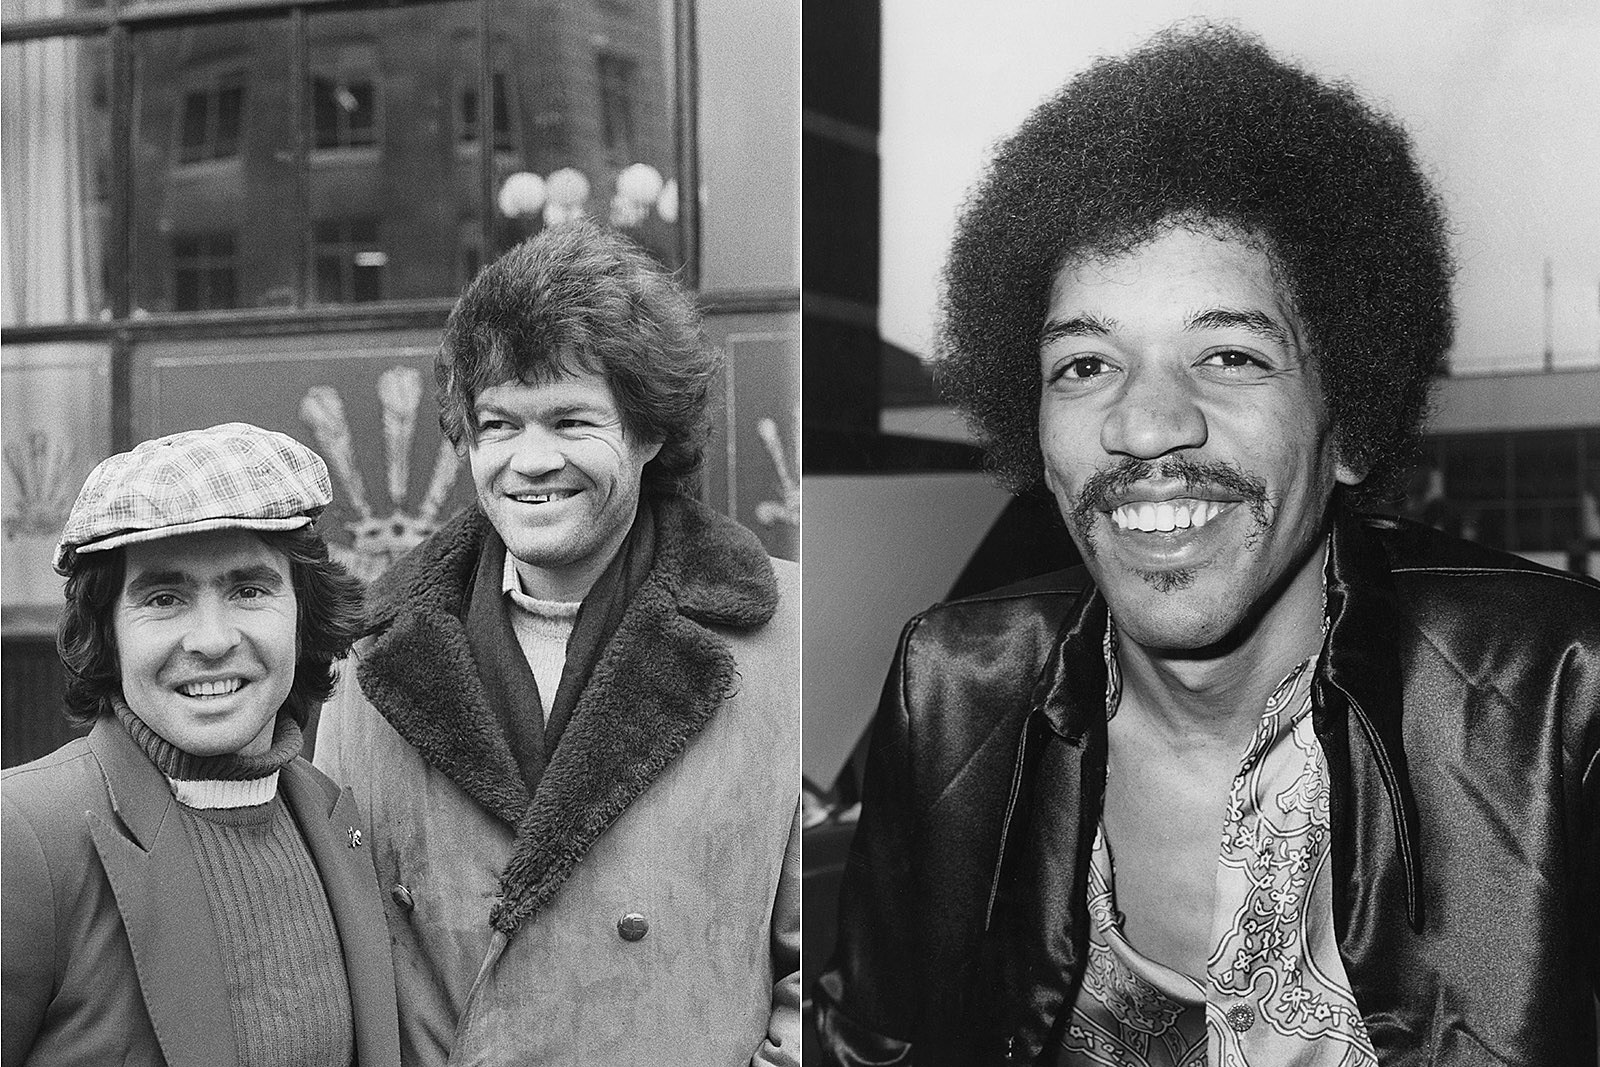 Micky Dolenz Recalls the Monkees' 'Weird' Tour With Jimi Hendrix